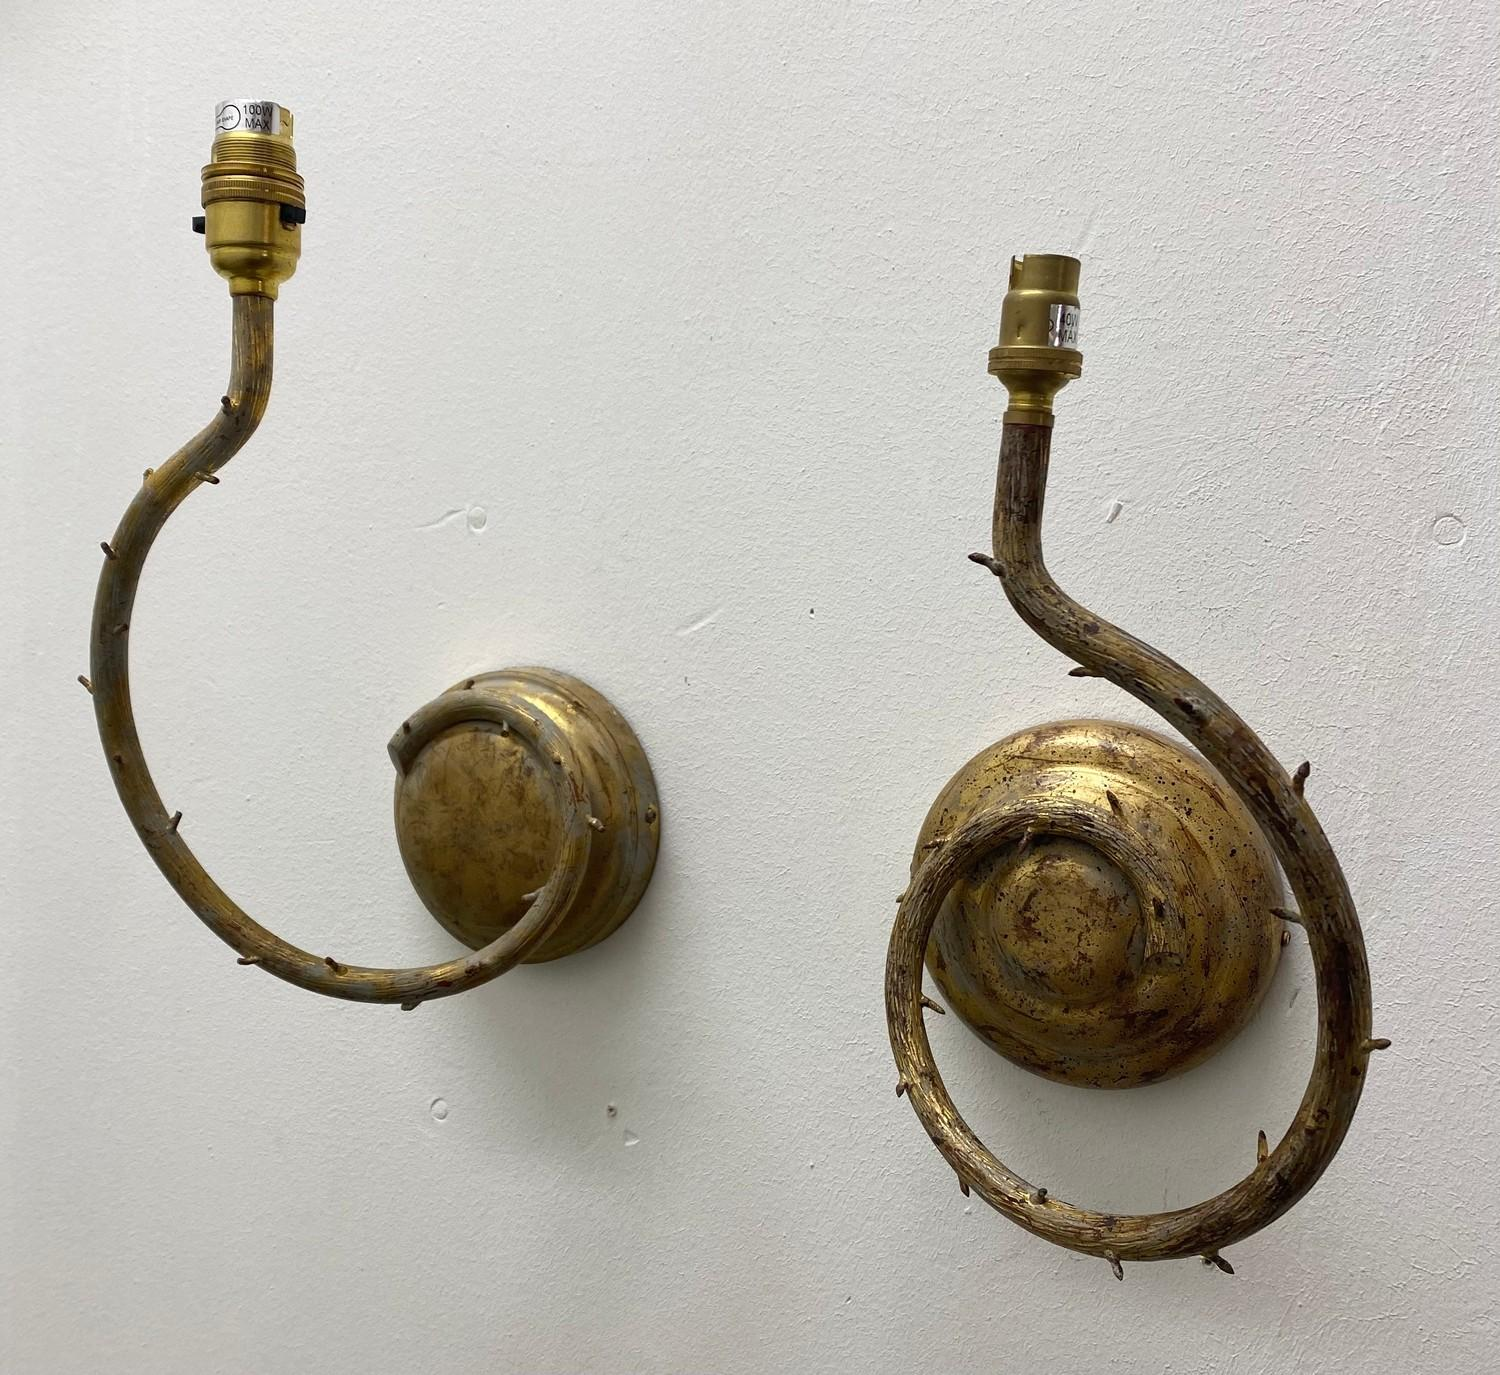 PORTA ROMANA WALL LIGHTS, a near pair, naturalistic branch design in decayed gold, largest 32cm - Image 2 of 5